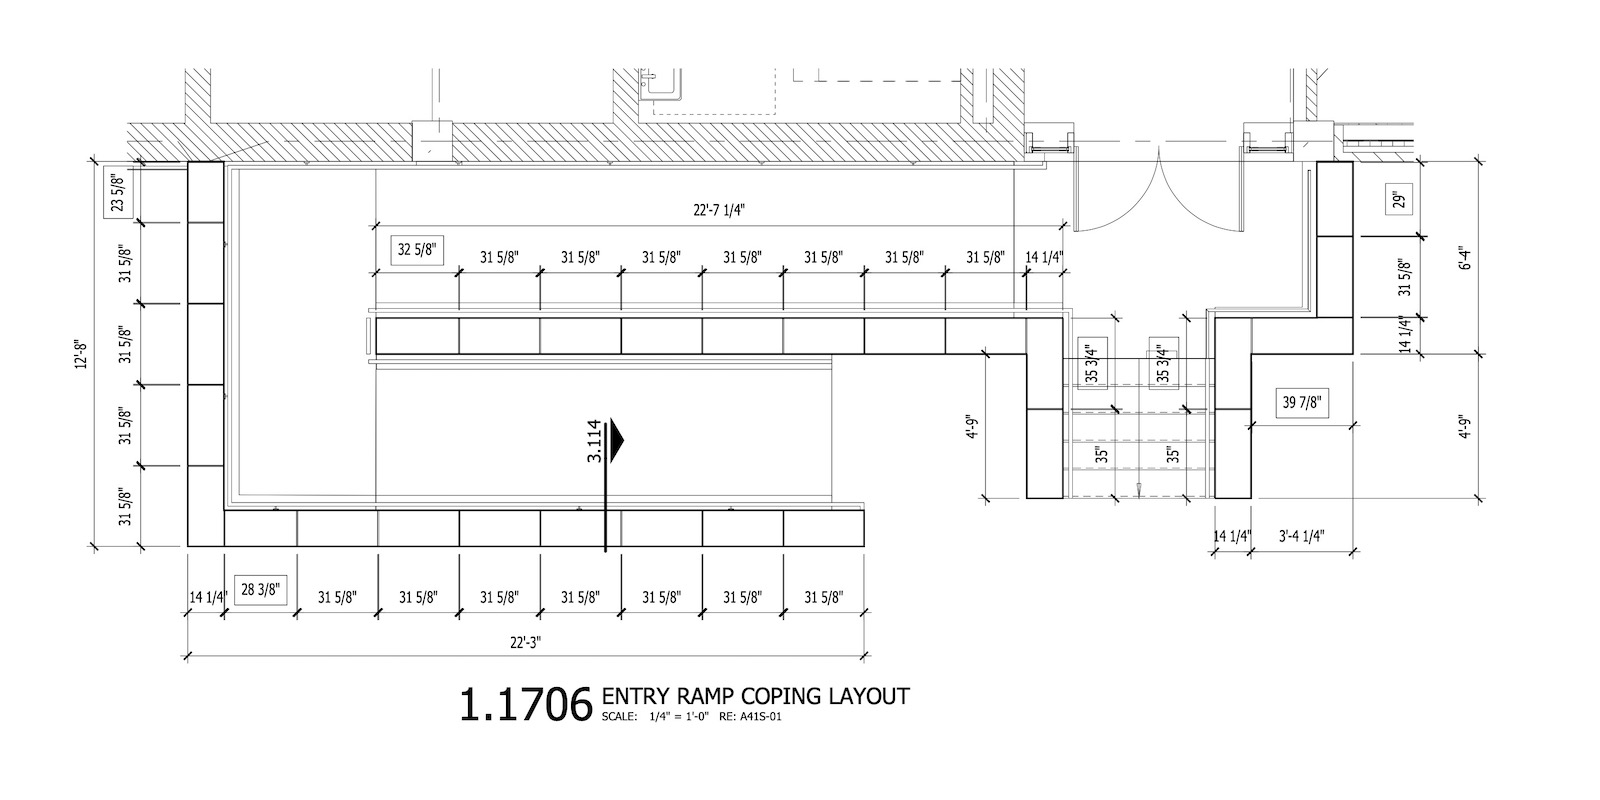 Entry Ramp Coping Layout - Settings Plan